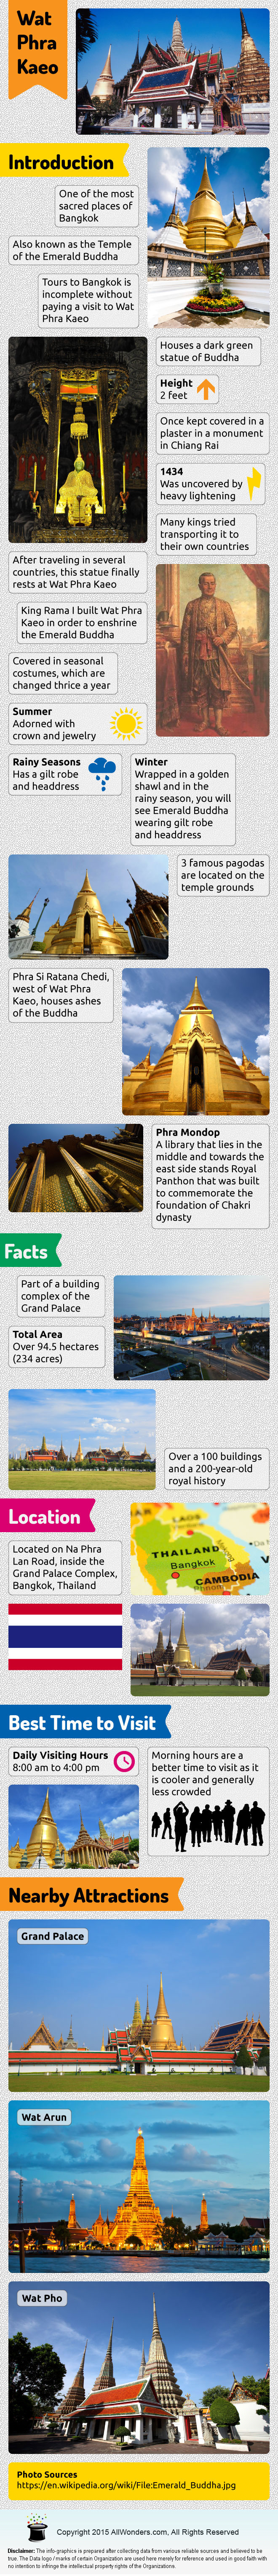 Wat Phra Kaeo Facts and Infographic